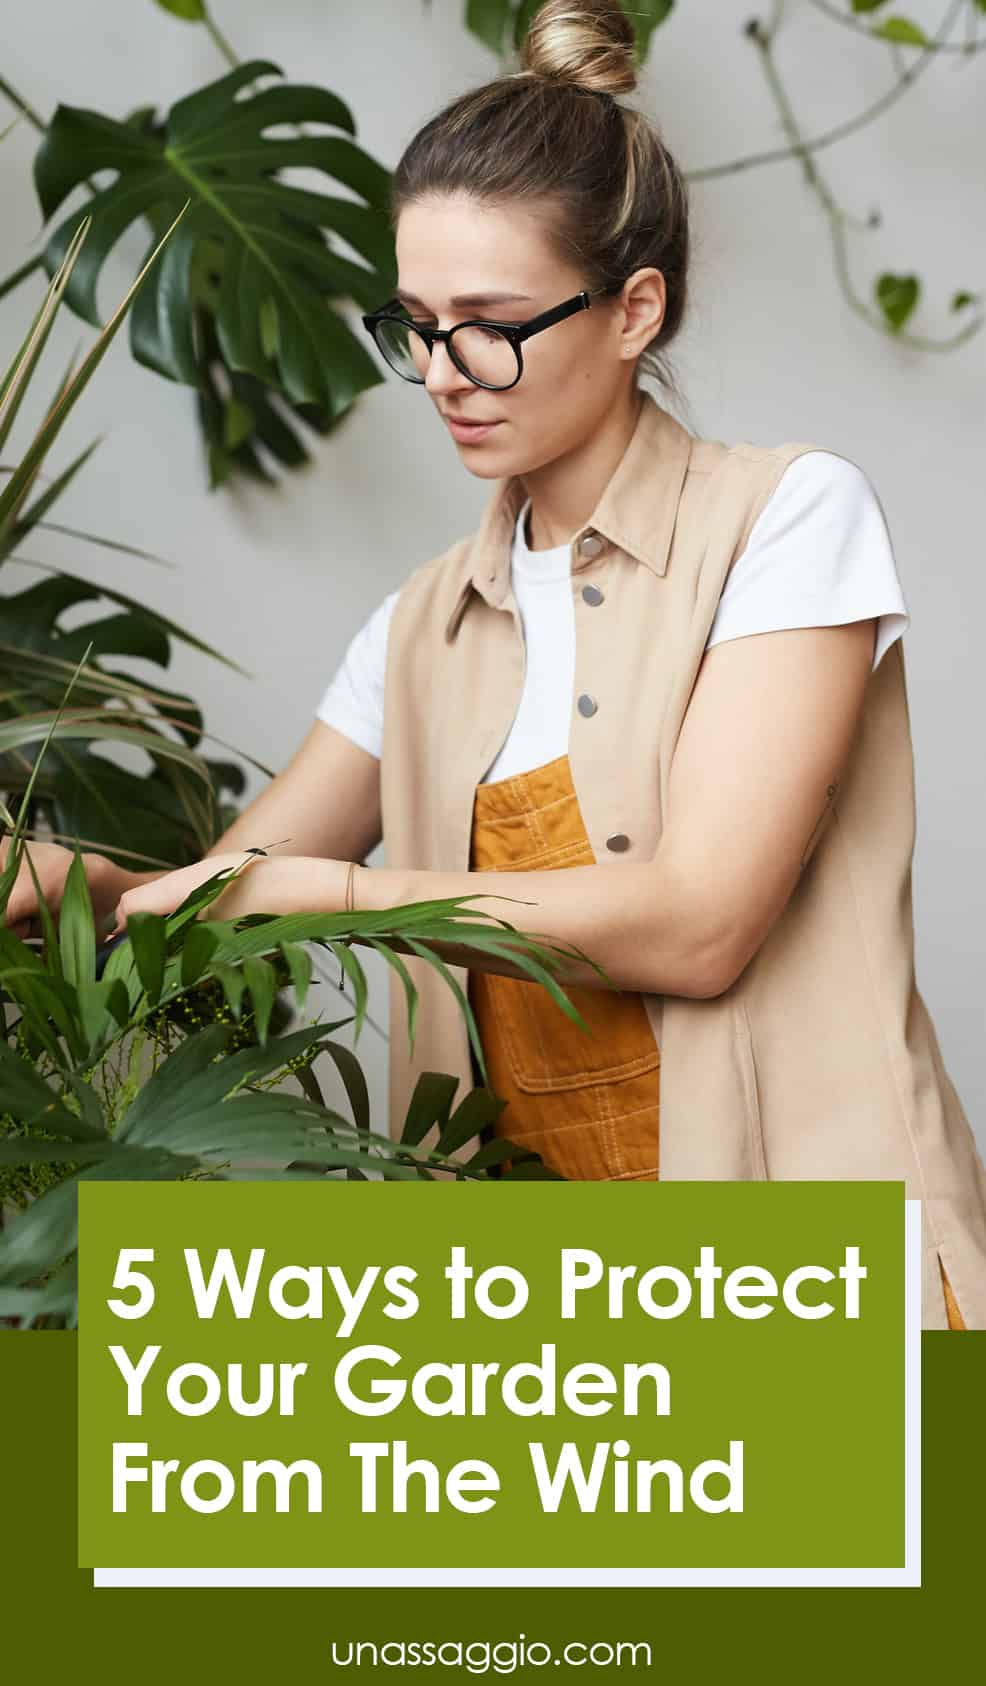 5 Ways to Protect Your Garden From The Wind